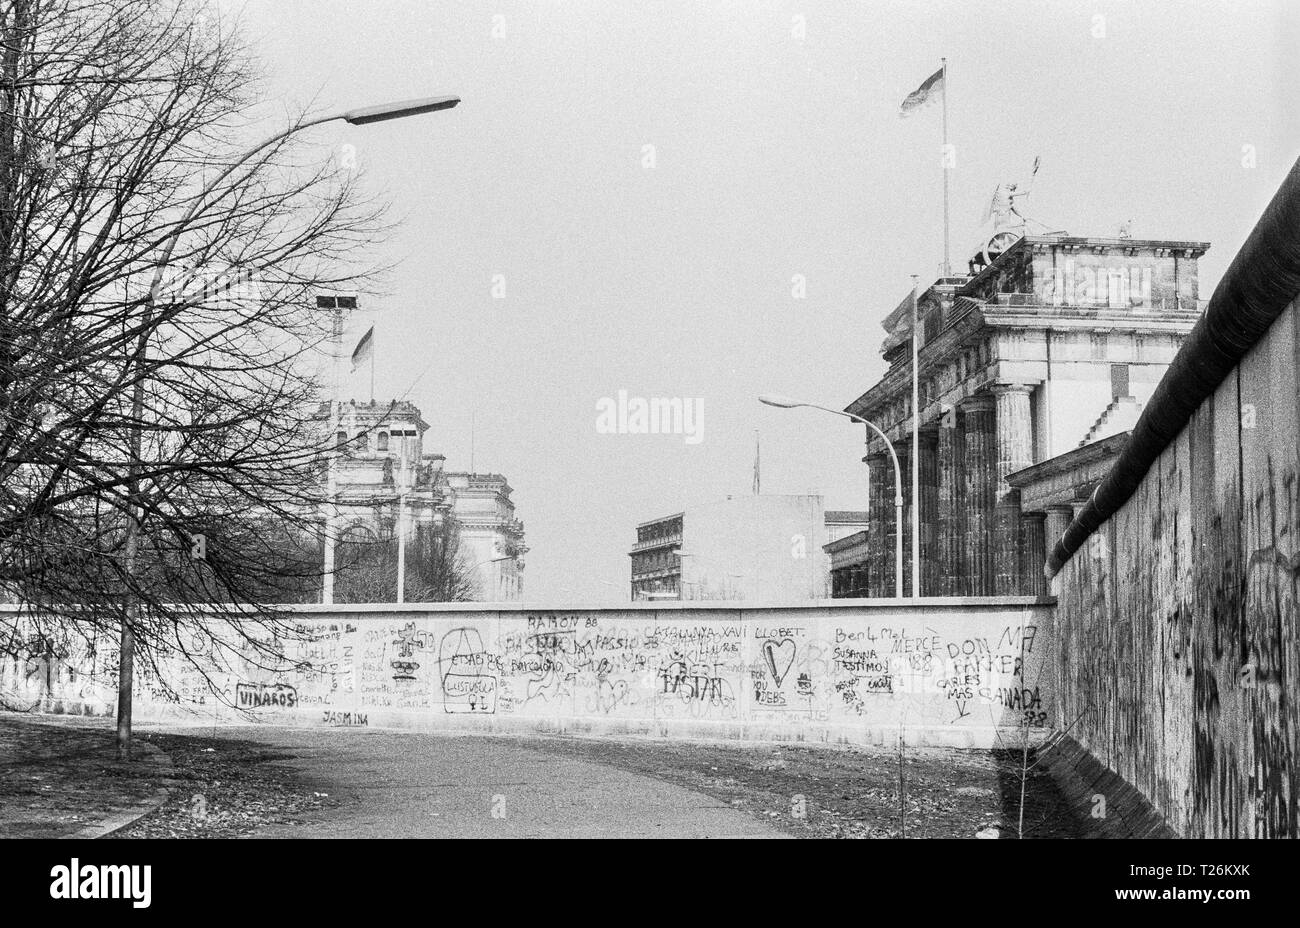 West Germany, Berlin, the wall in year 1988, Reichstag and Brandenburg Gate viewed from West Berlin, scan from 35 mm black and white negative - Stock Image